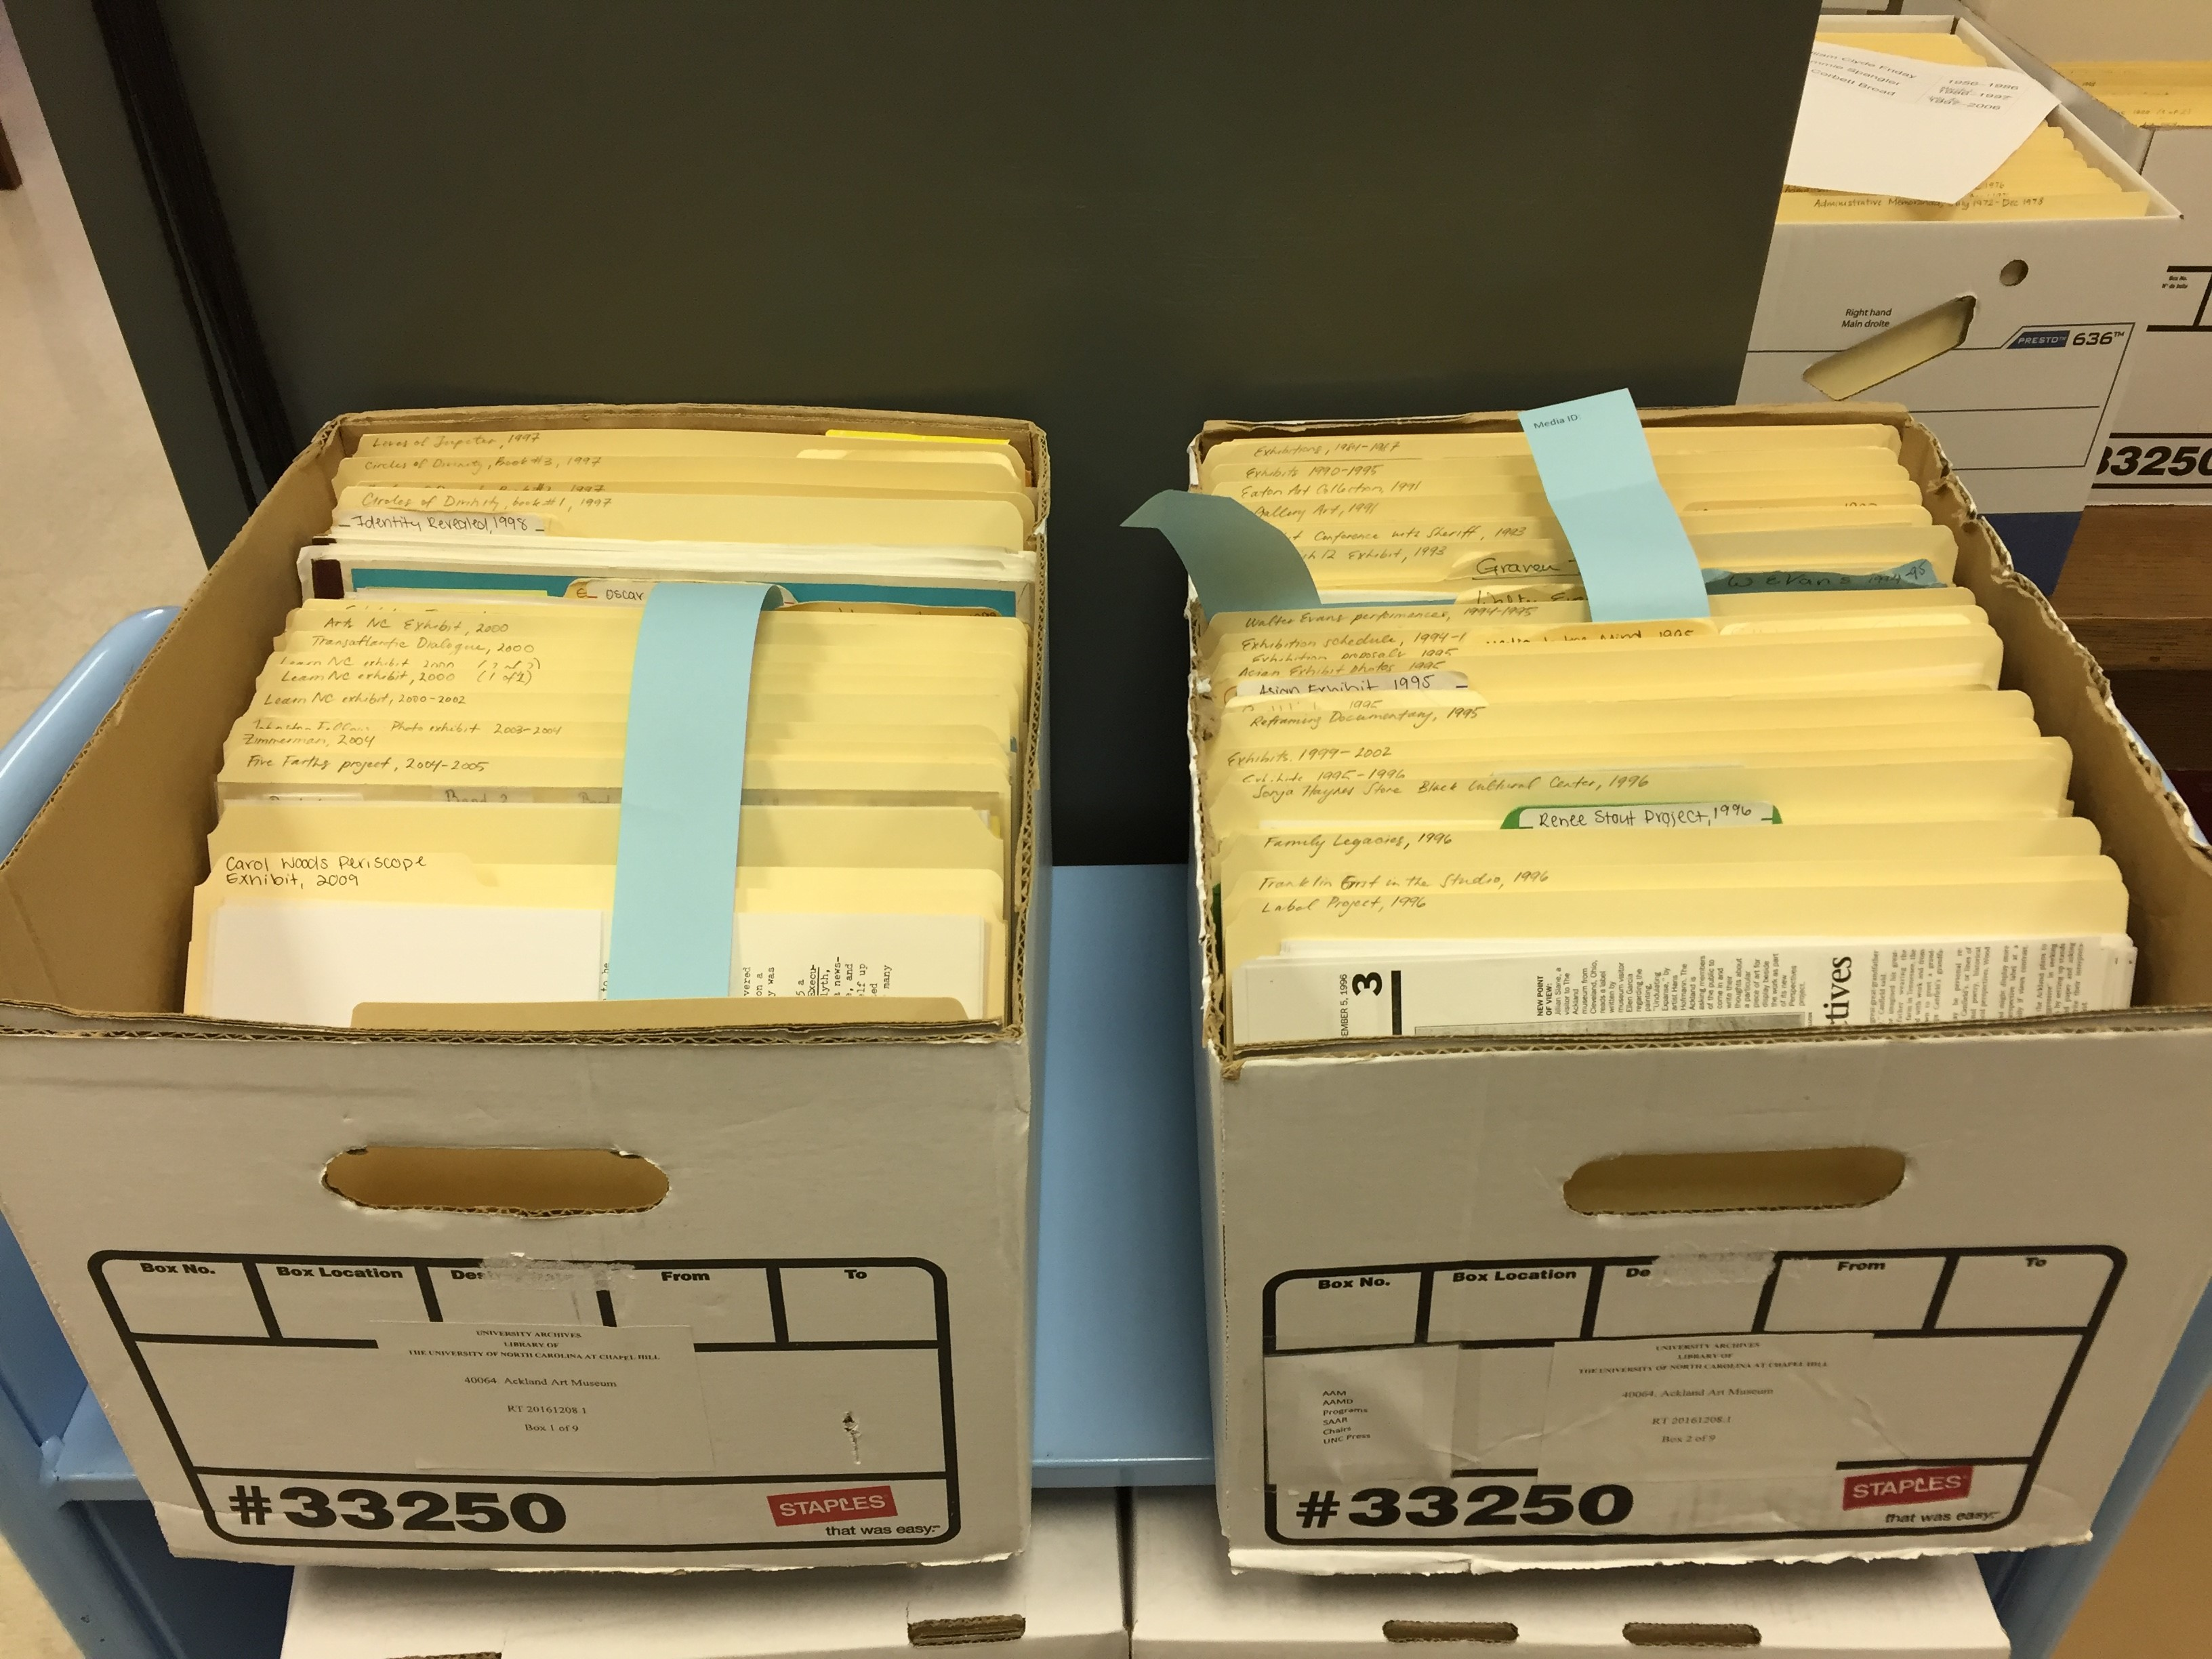 Two archival boxes containing file folders of records.